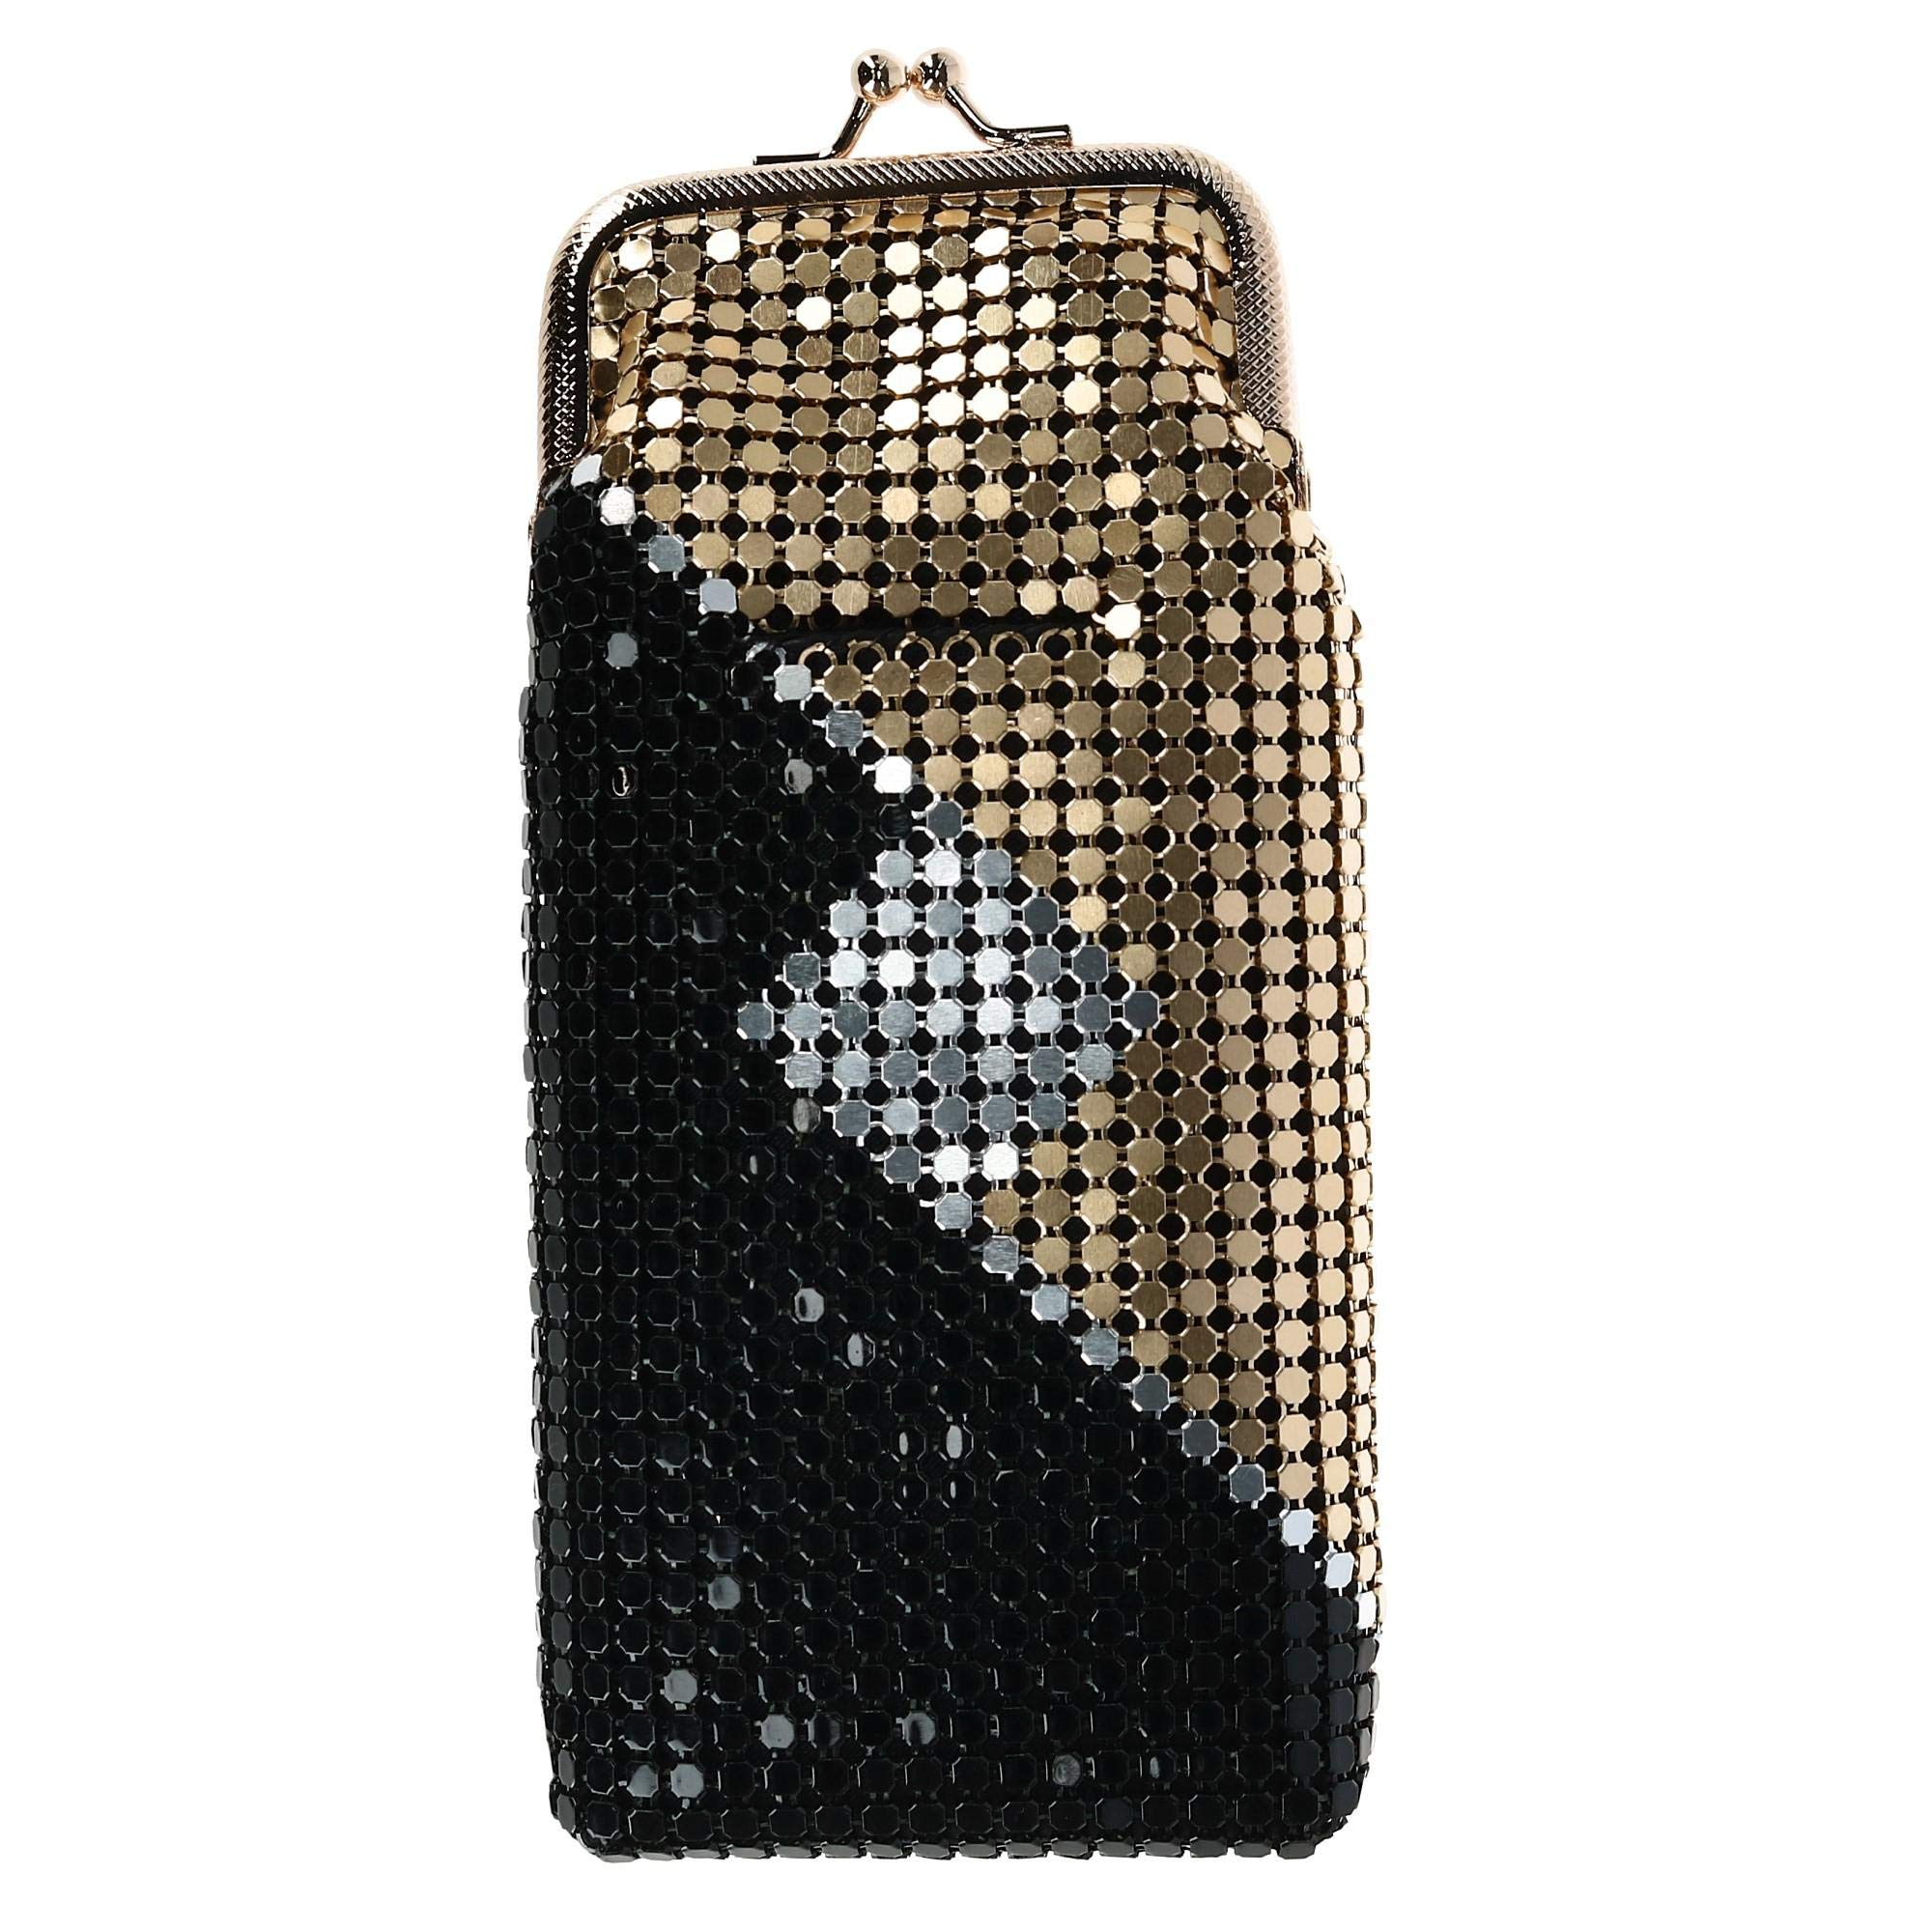 CTM Women's Mesh Pattern Cigarette Case with Lighter Pocket & Kiss Lock Closure, Black by CTM